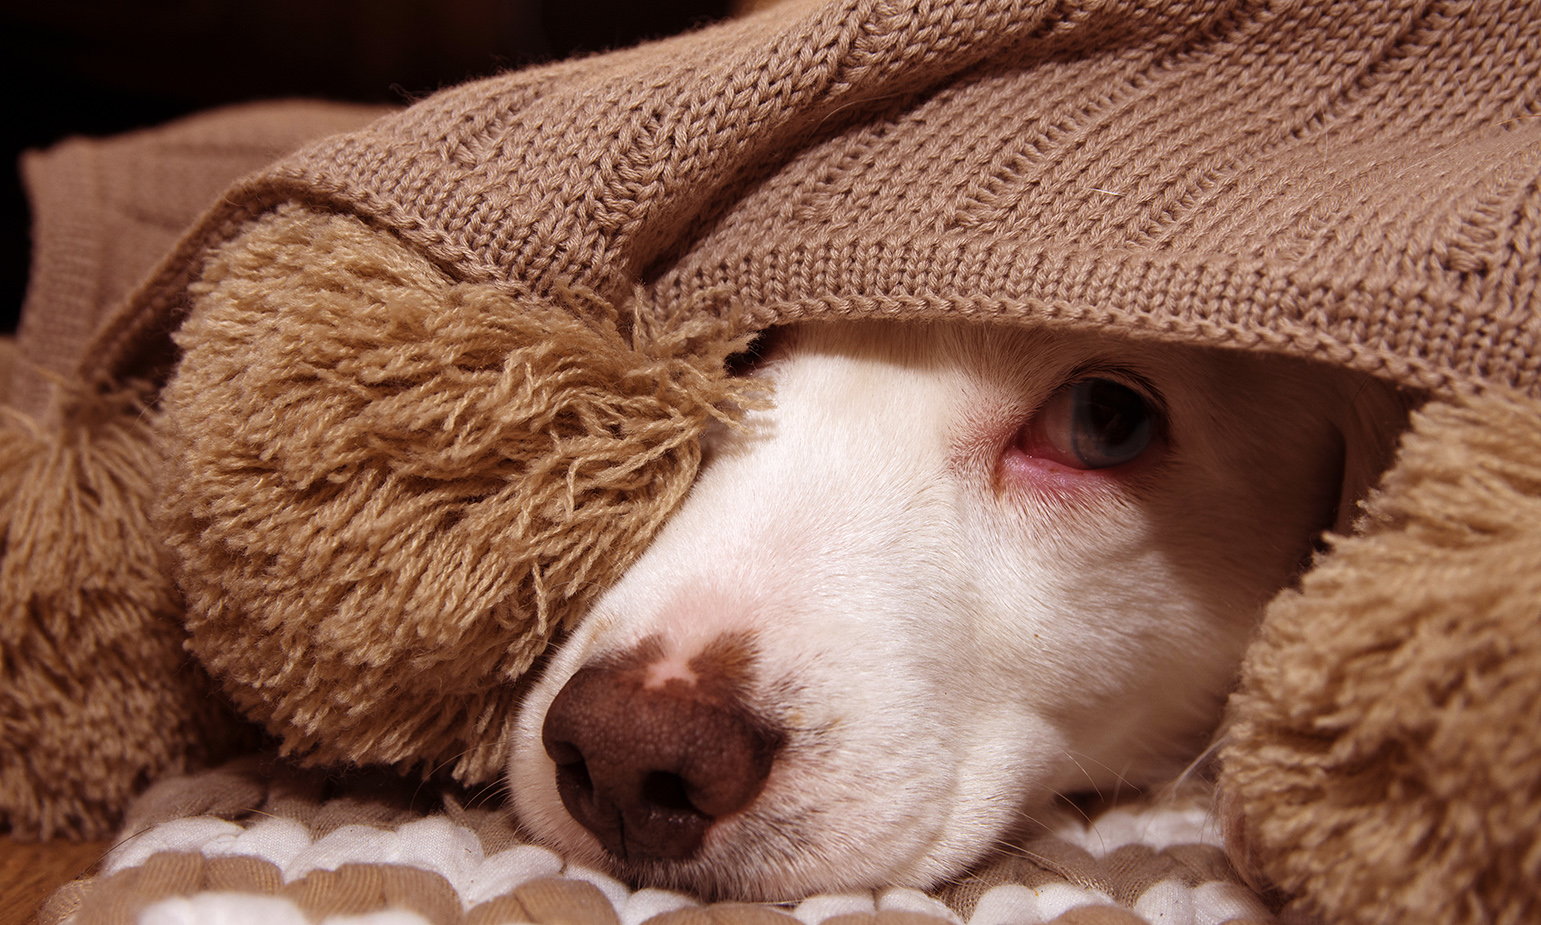 A dogs face protrudes from under knit blanket its expression suggesting fear or sickness